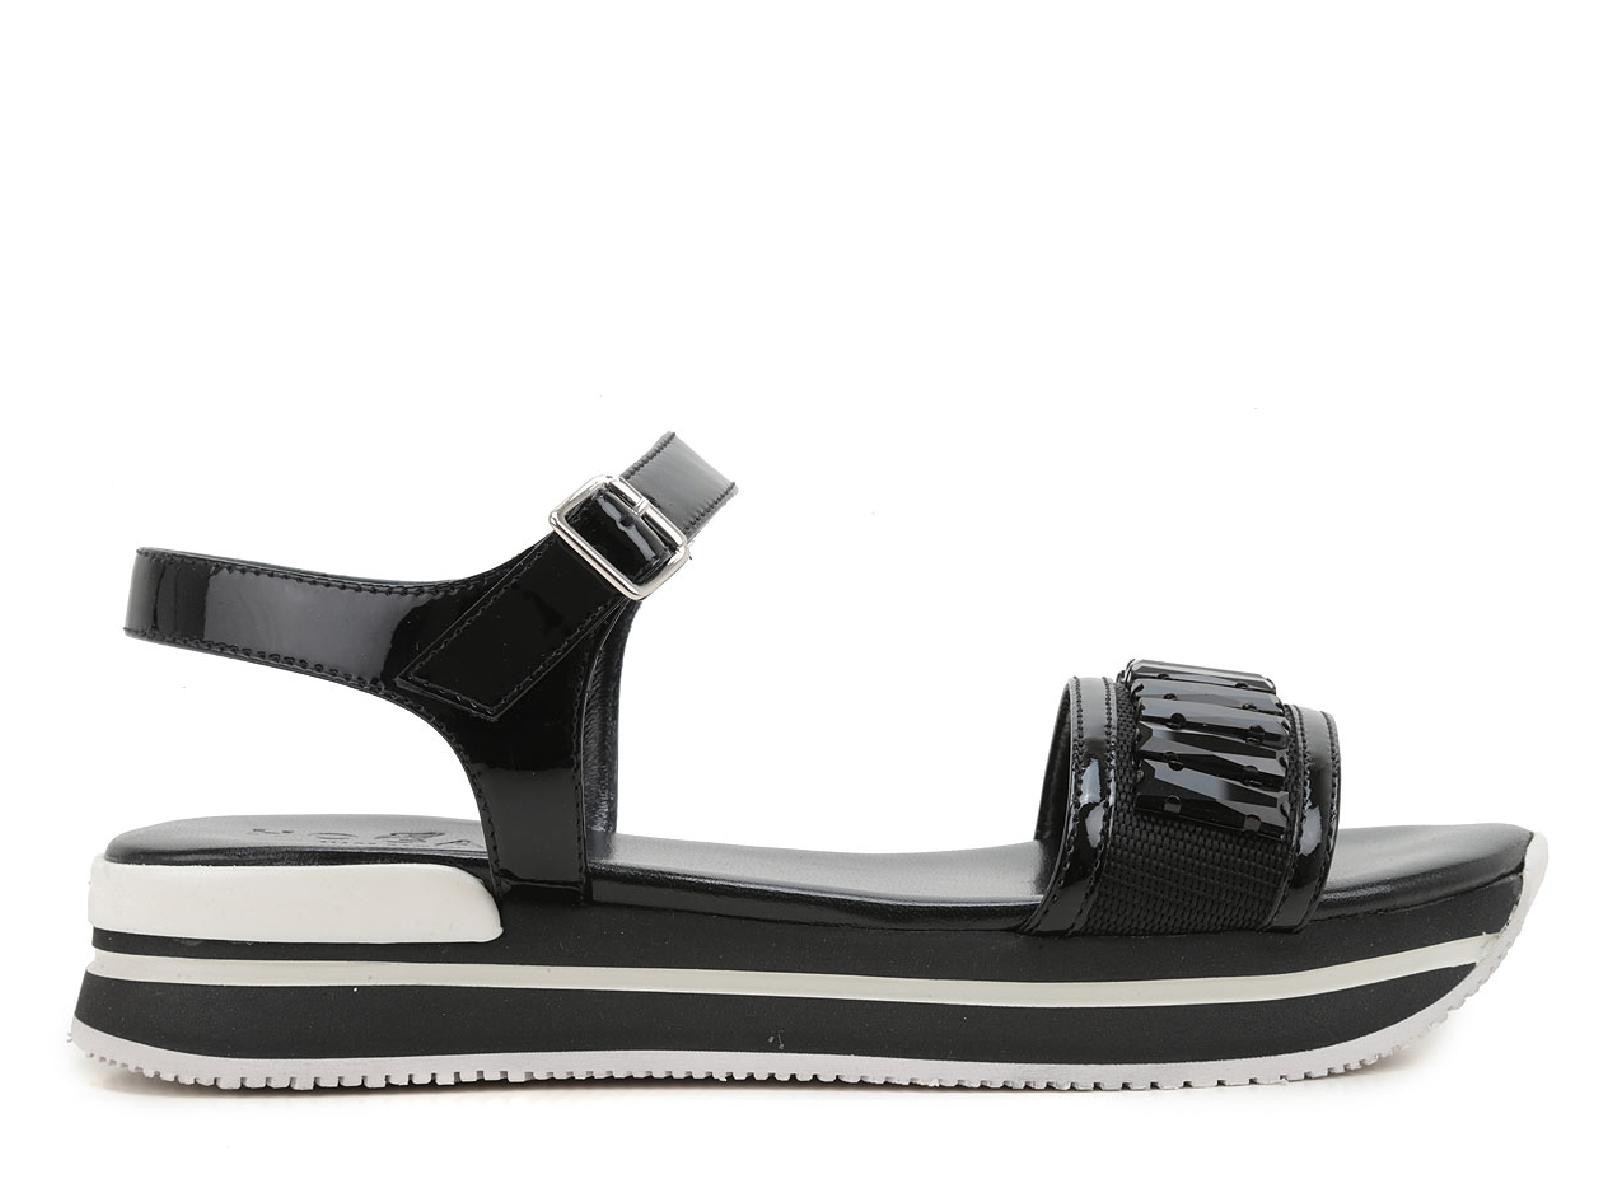 Hogan black leather low wedges ankle strap sandals with ...